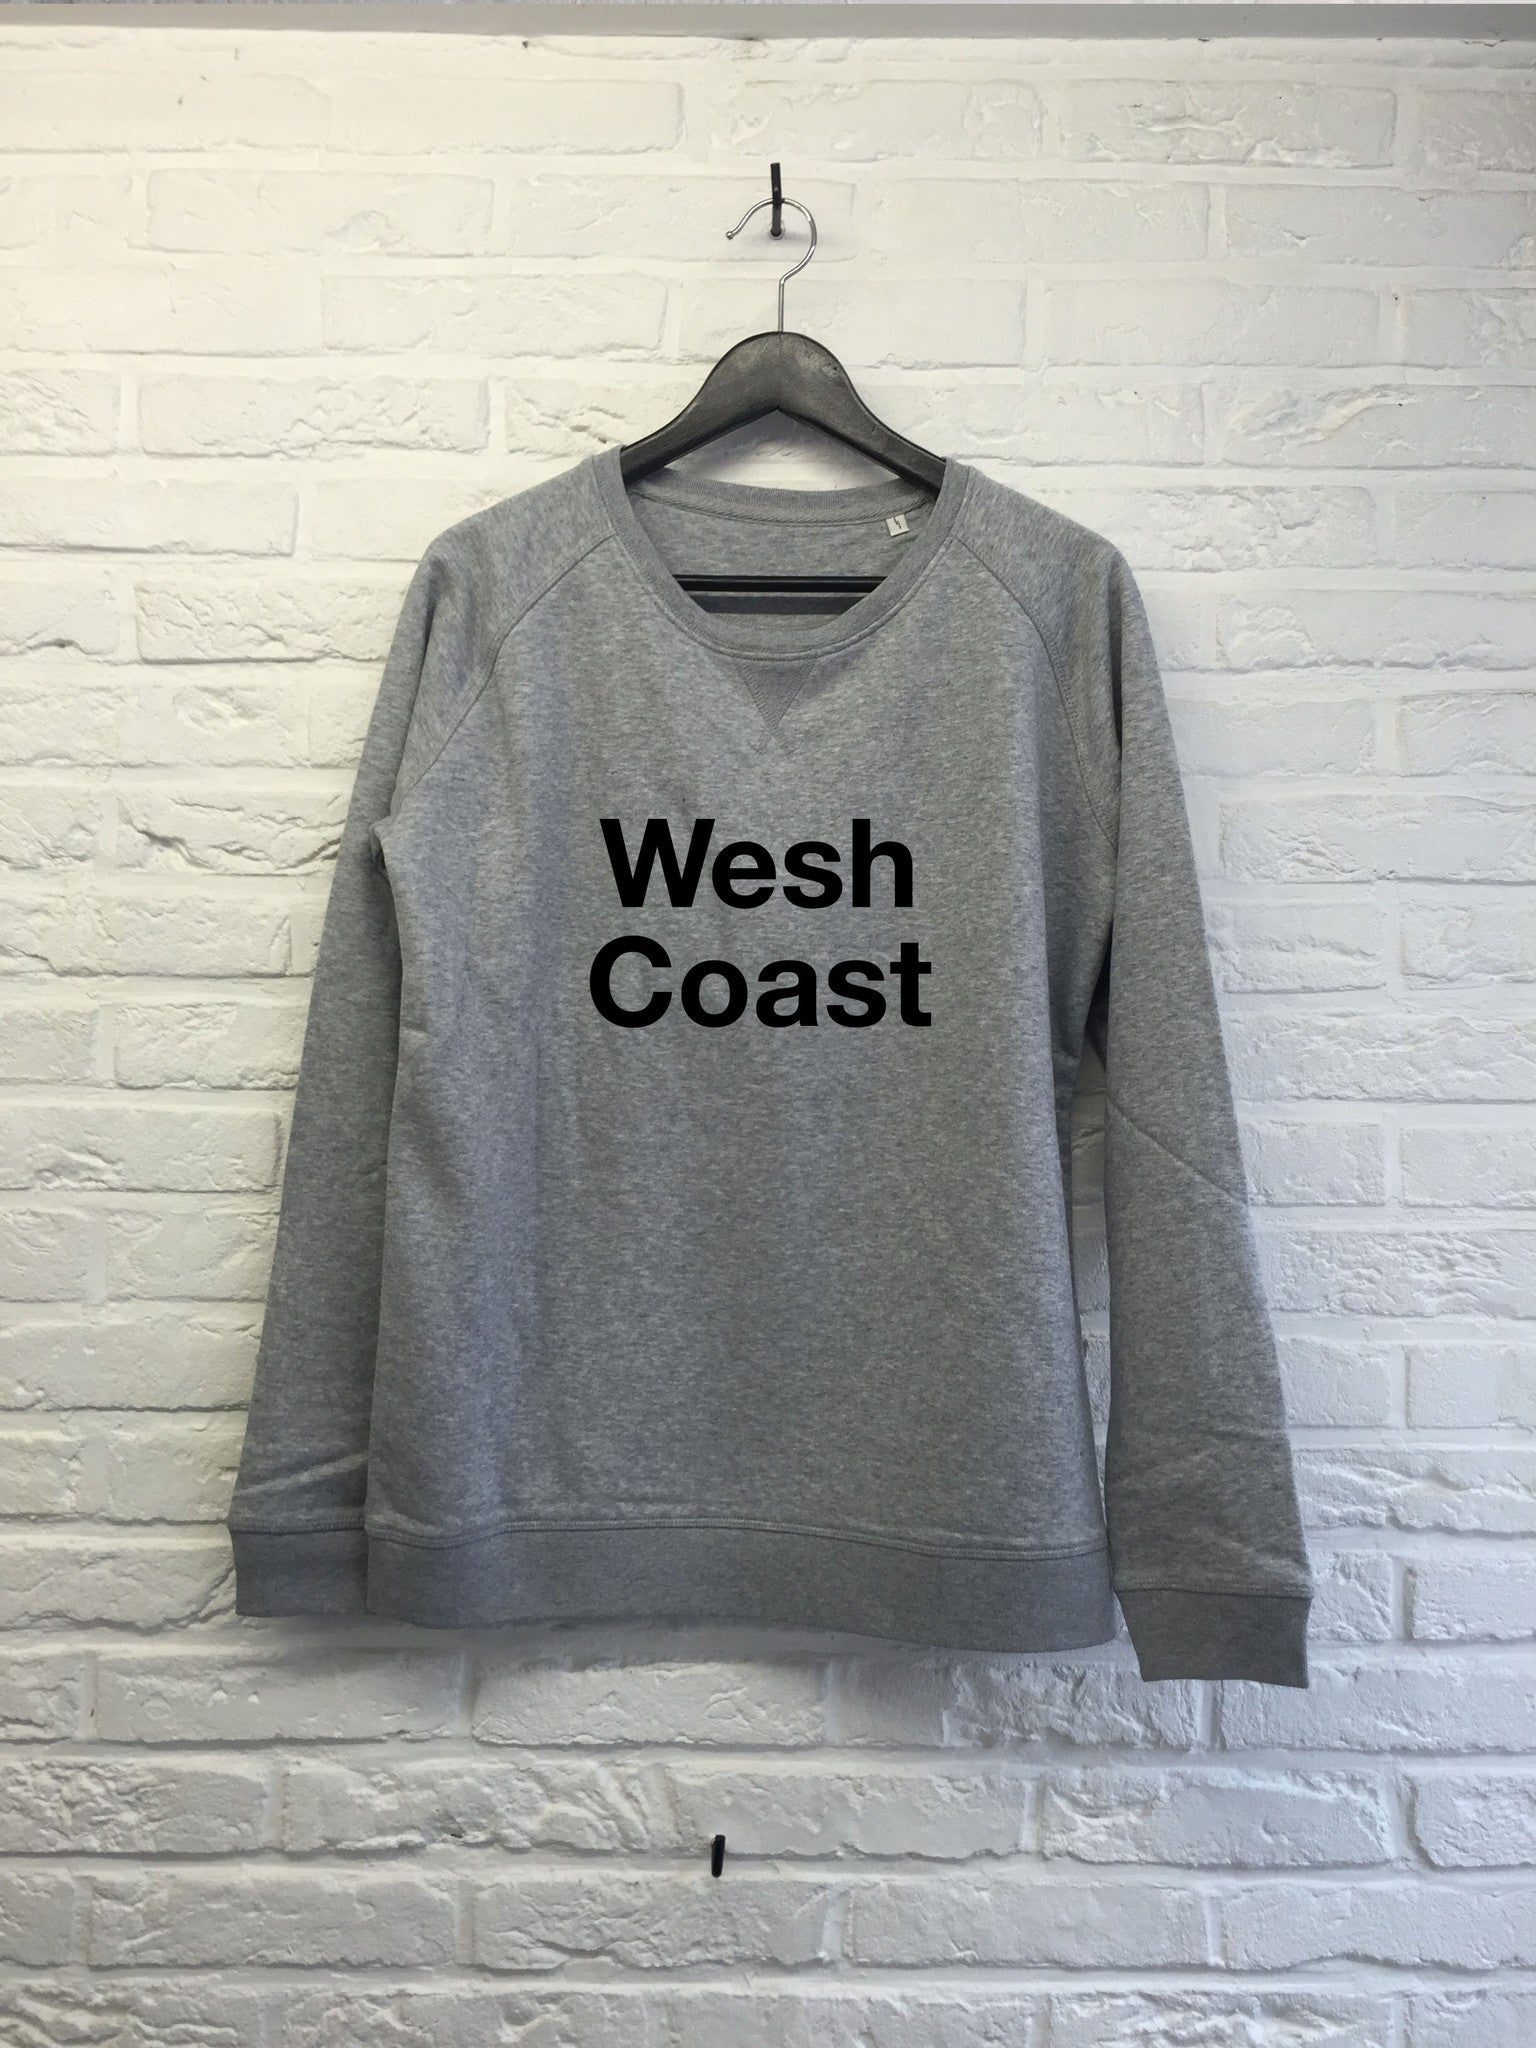 Wesh Coast - Sweat - Femme-Sweat shirts-Atelier Amelot